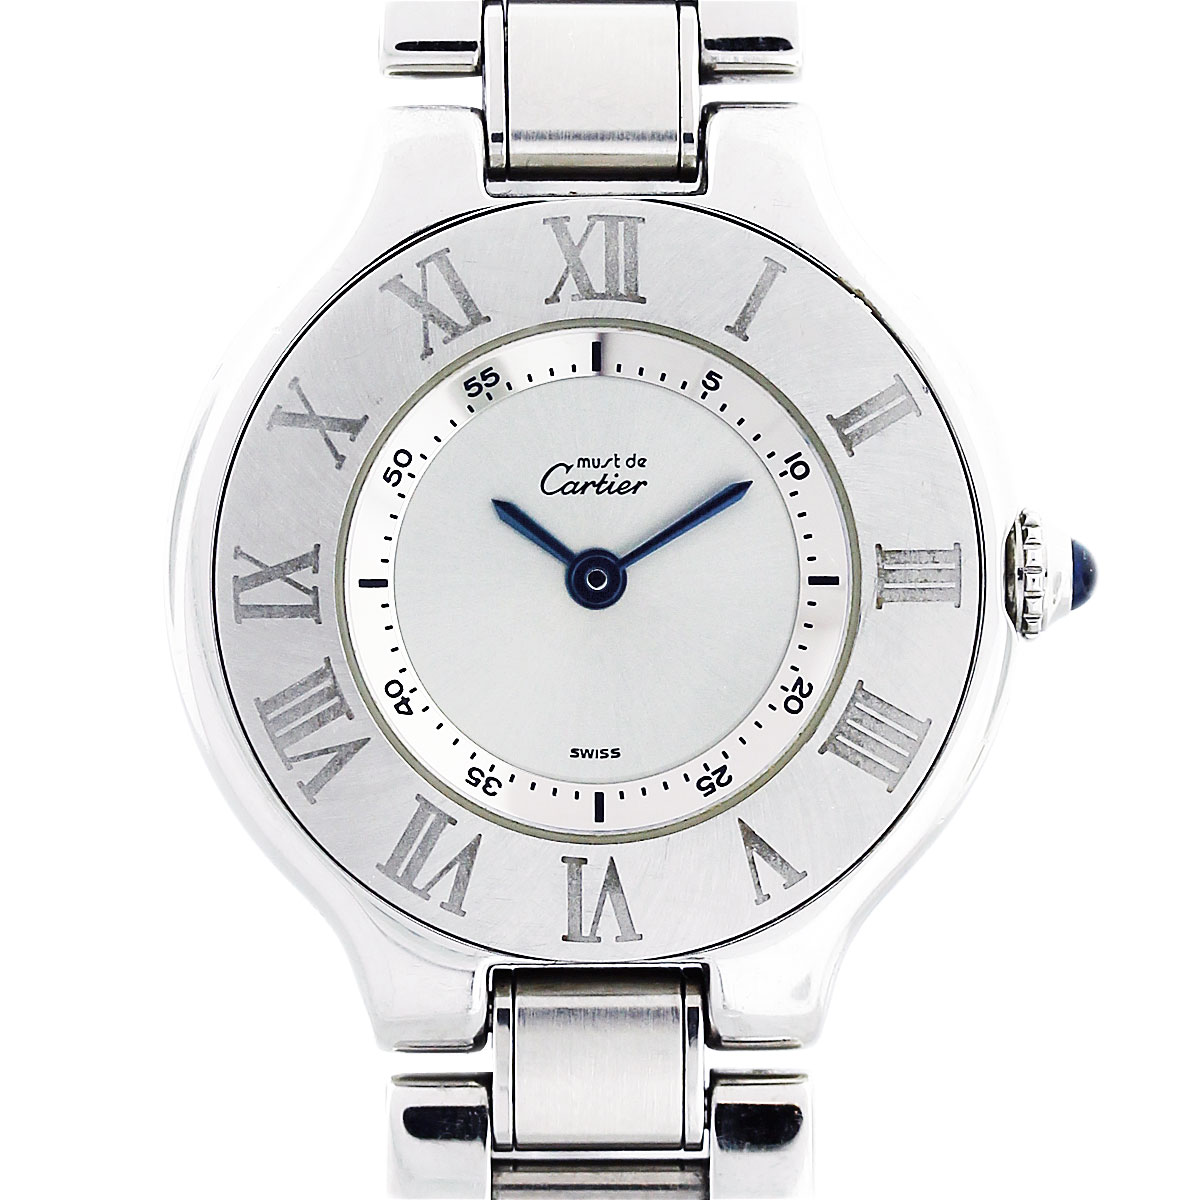 77a2f38266ba Cartier 21 Must De Cartier Stainless Steel Ladies Watch W10109T2